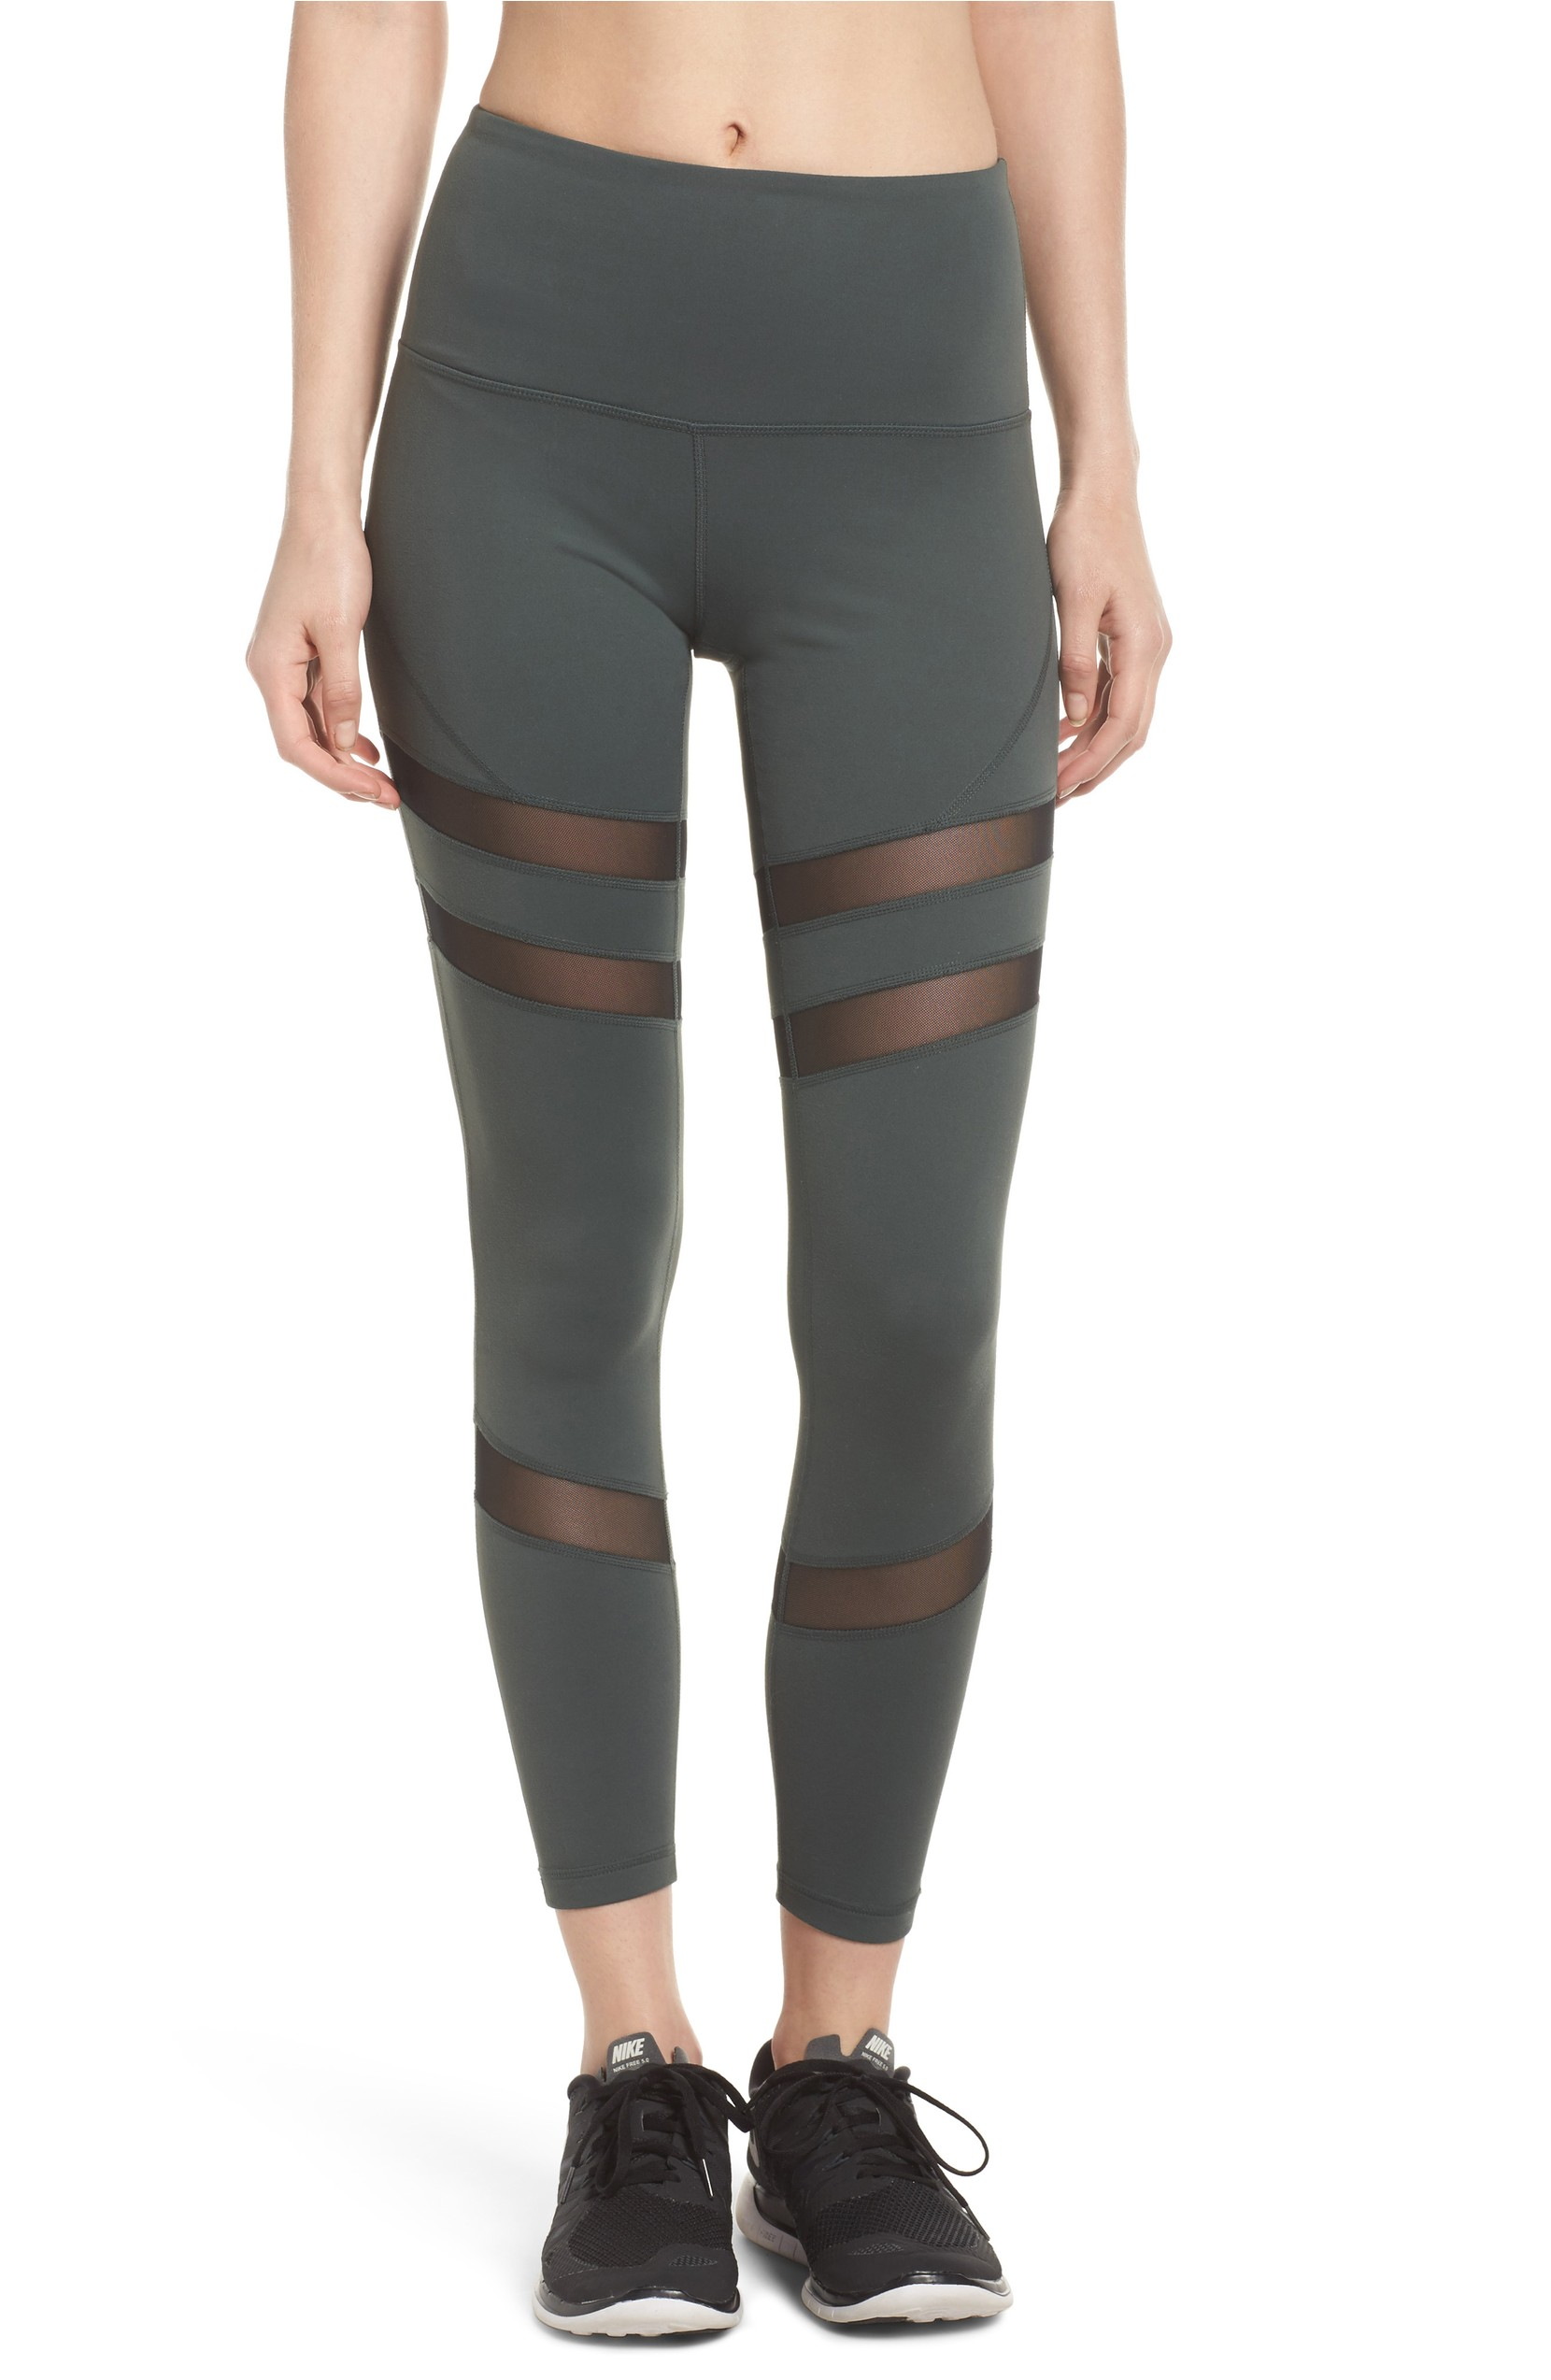 Good Sport High Waist Midi Leggings originally $65 and now $38.98. Figure-sculpting performance fabric inset with cooling mesh keeps you looking and feeling good all workout long.<p><br></p><p>(Image: Nordstrom)</p>